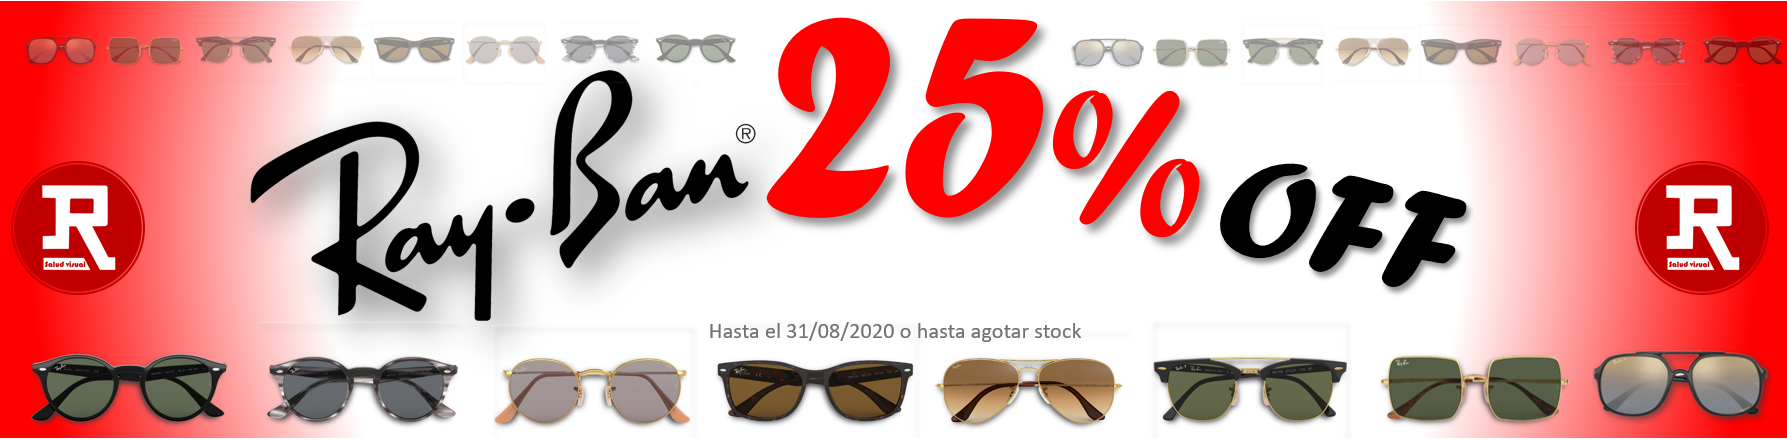 banner rayban sol 25 dto 202008.PNG